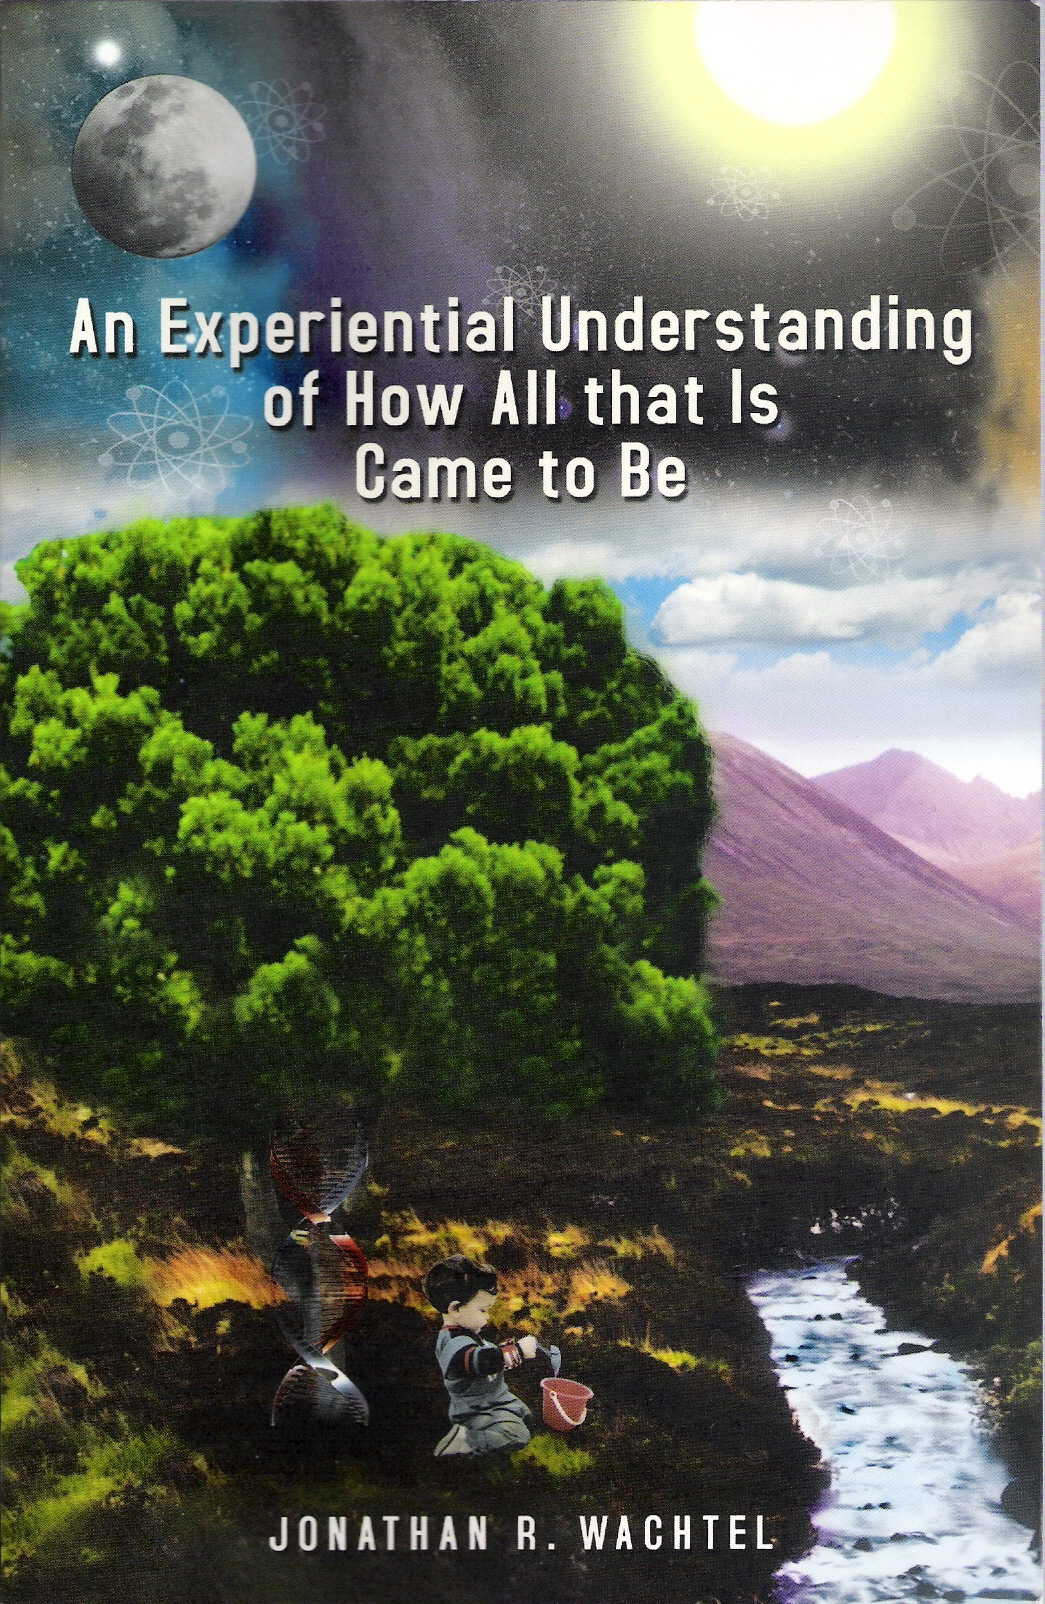 An Experiential Understanding of How All that Is Came to Be, inspiring book about theory of everything by life coach and life consultant, relationship coach and relationship consultant, career coach and career consultant, business coach and business consultant, marketing coach and marketing consultant, SEO expert and SEO consultant, health coach and health consultant, success coach and success consultant, law of attraction coach and law of attraction consultant, international speaker and best-selling author Jonathan R. Wachtel in Kew Gardens, Queens, New York City, New York, NY, near the Upper East Side of Manhattan, near Chelsea, NY, near Westchester, NY, near the Hamptons, on Long Island, NY, serving Kew Gardens, NY, Forest Hills, NY, Forest Hills Gardens, NY, Kew Garden Hills, NY, all of Queens, NY, Brooklyn, NY, Manhattan, NY, Nassau County, Long Island, NY, Suffolk County, Long Island, NY, Staten Island, the Bronx, all of New York State, and surrounding areas, and everywhere over the phone and online, who offers life coaching and life consulting, relationship coaching and relationship consulting, career coaching and career consulting, business coaching and business consulting, marketing coaching and marketing consulting, SEO expertise and SEO consulting, health coaching and health consulting, success coaching and success consulting, law of attraction coaching and law of attraction consulting, and more in Kew Gardens, Queens, New York City, New York, NY, near the Upper East Side of Manhattan, near Chelsea, NY, near Westchester, NY, near the Hamptons, on Long Island, NY, serving Kew Gardens, NY, Forest Hills, NY, Forest Hills Gardens, NY, Kew Garden Hills, NY, all of Queens, NY, Brooklyn, NY, Manhattan, NY, Nassau County, Long Island, NY, Suffolk County, Long Island, NY, Staten Island, the Bronx, all of New York State, and surrounding areas, and everywhere on the phone and online. Seeking a psychologist, therapist, counselor, or coach in Kew Gardens, NY, Forest Hills, NY, Forest Hills Gardens, NY, Kew Garden Hills, NY, Queens, NY, Brooklyn, NY, Manhattan, NY, Nassau County, Long Island, NY, Suffolk County, Long Island, NY, Staten Island, the Bronx, New York City, New York State, or surrounding areas? If you're seeking therapy, counseling, or coaching in Kew Gardens, NY, Forest Hills, NY, Forest Hills Gardens, NY, Kew Garden Hills, NY, Queens, NY, Brooklyn, NY, Manhattan, NY, Nassau County, Long Island, NY, Suffolk County, Long Island, NY, Staten Island, the Bronx, New York City, New York State, or anywhere, contact New York Life Coach Jonathan.